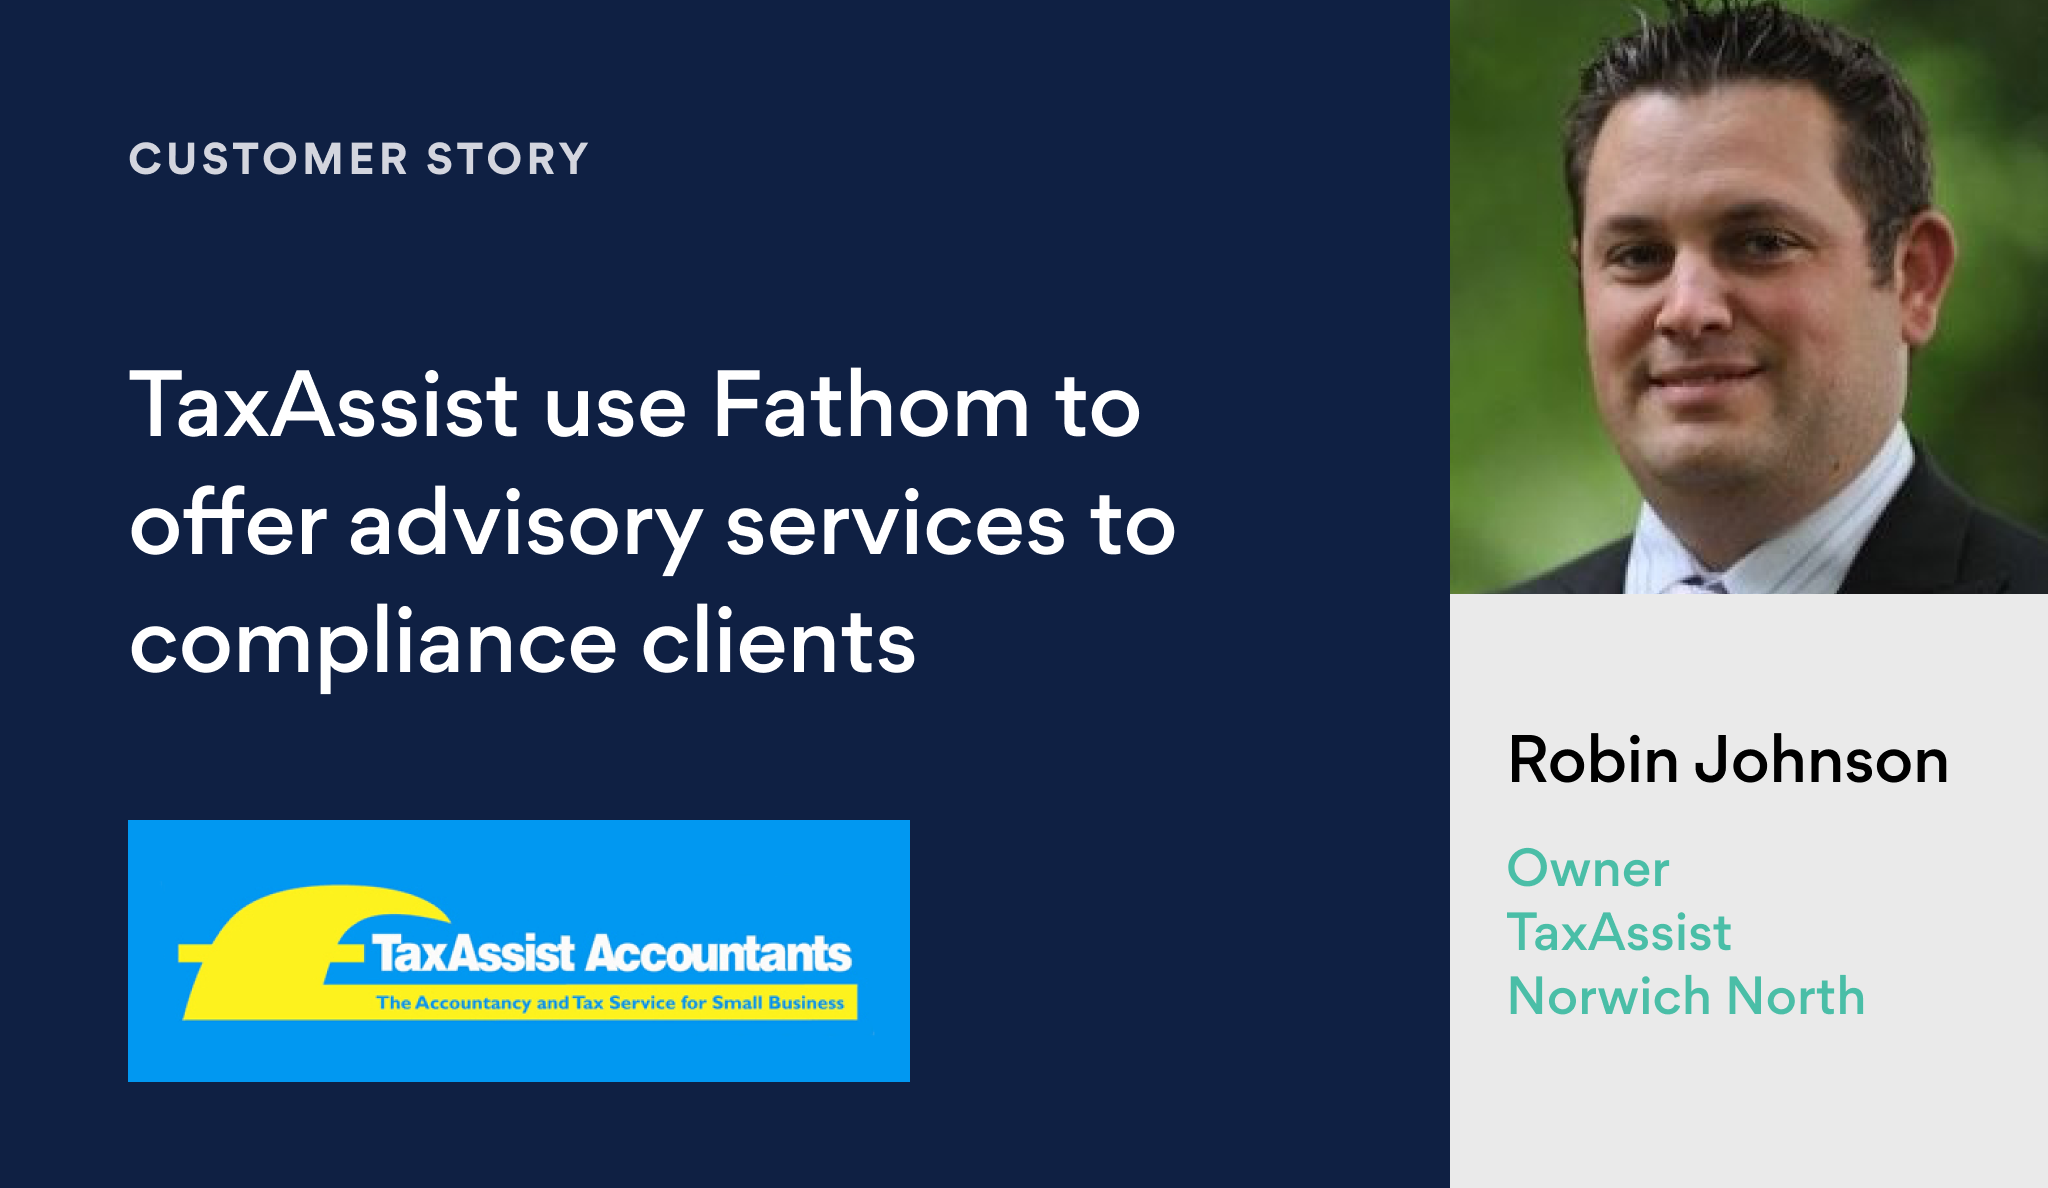 Tax Assist use Fathom to offer advisory services to compliance clients